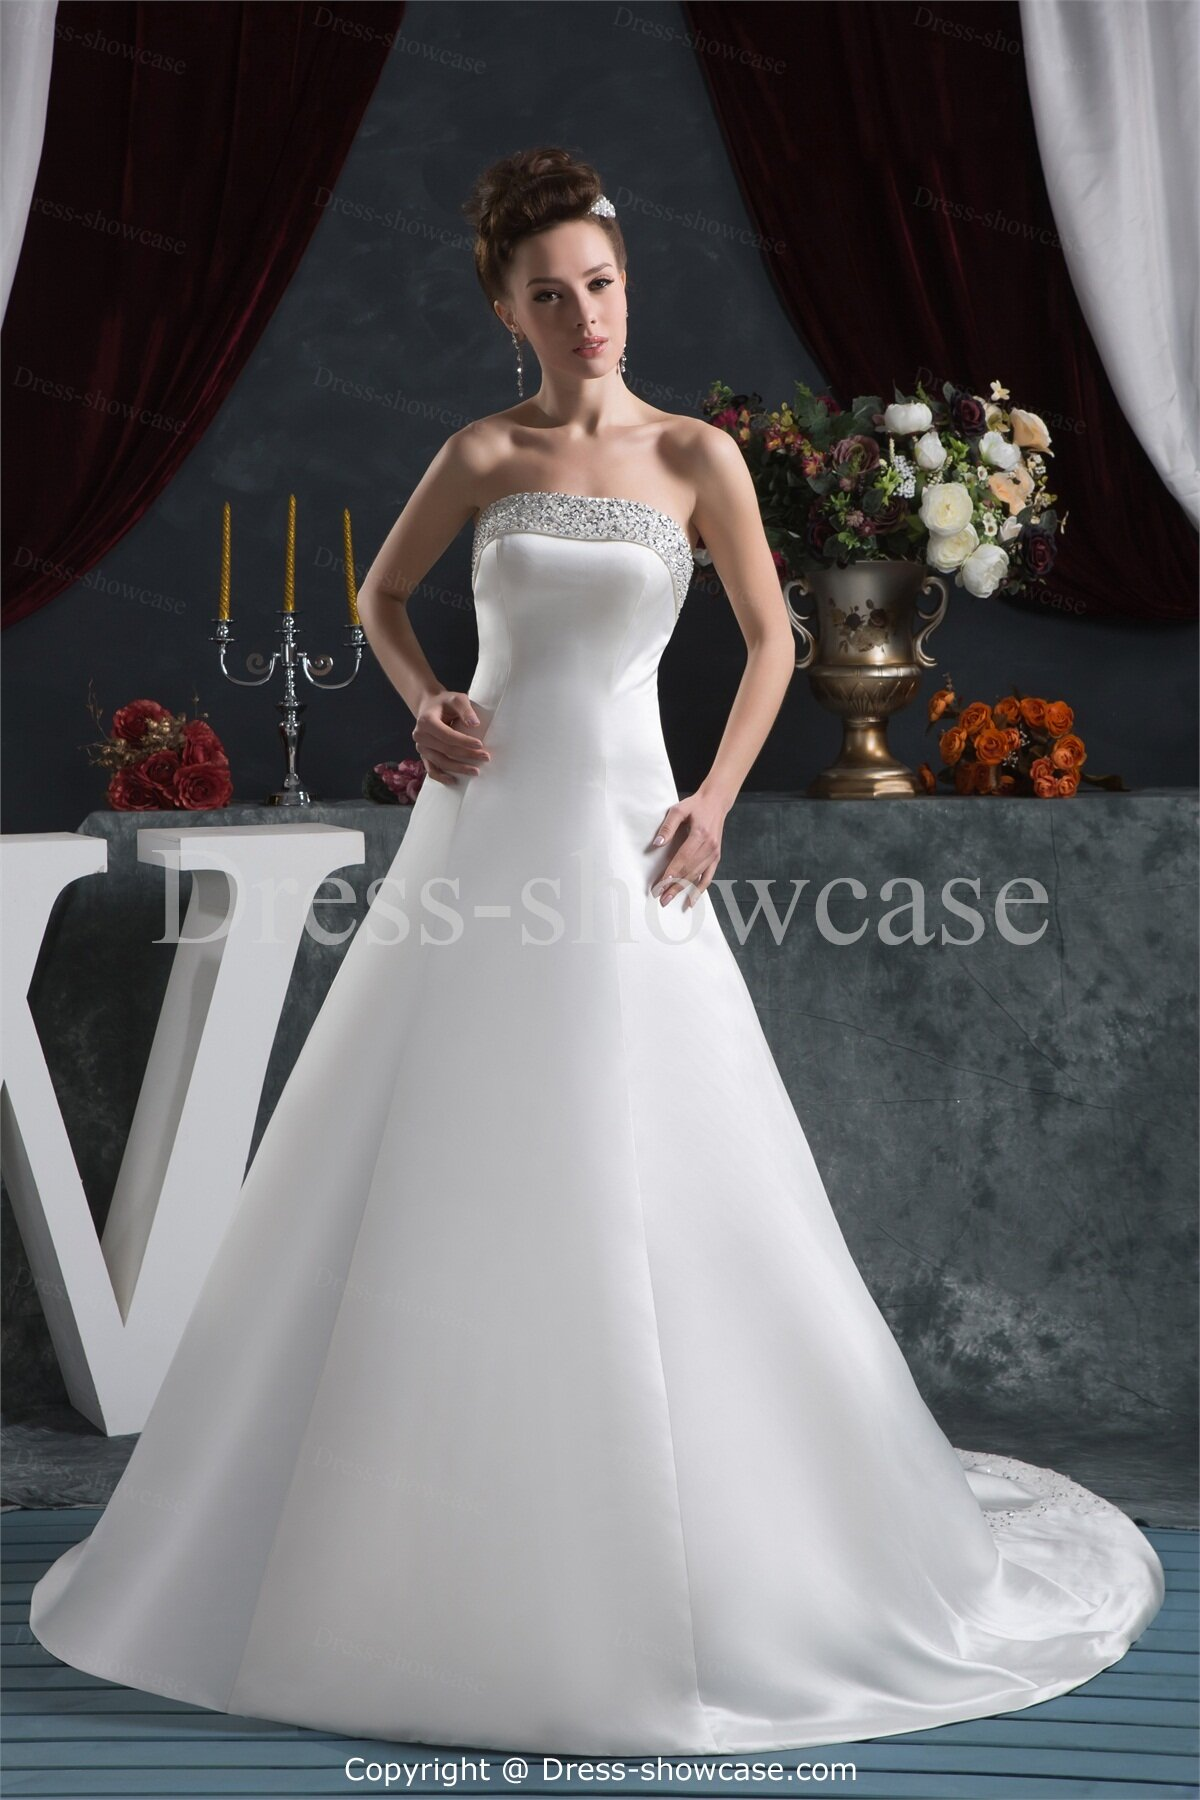 Strapless wedding dresses with corset back pictures ideas for Strapless bustier for wedding dress